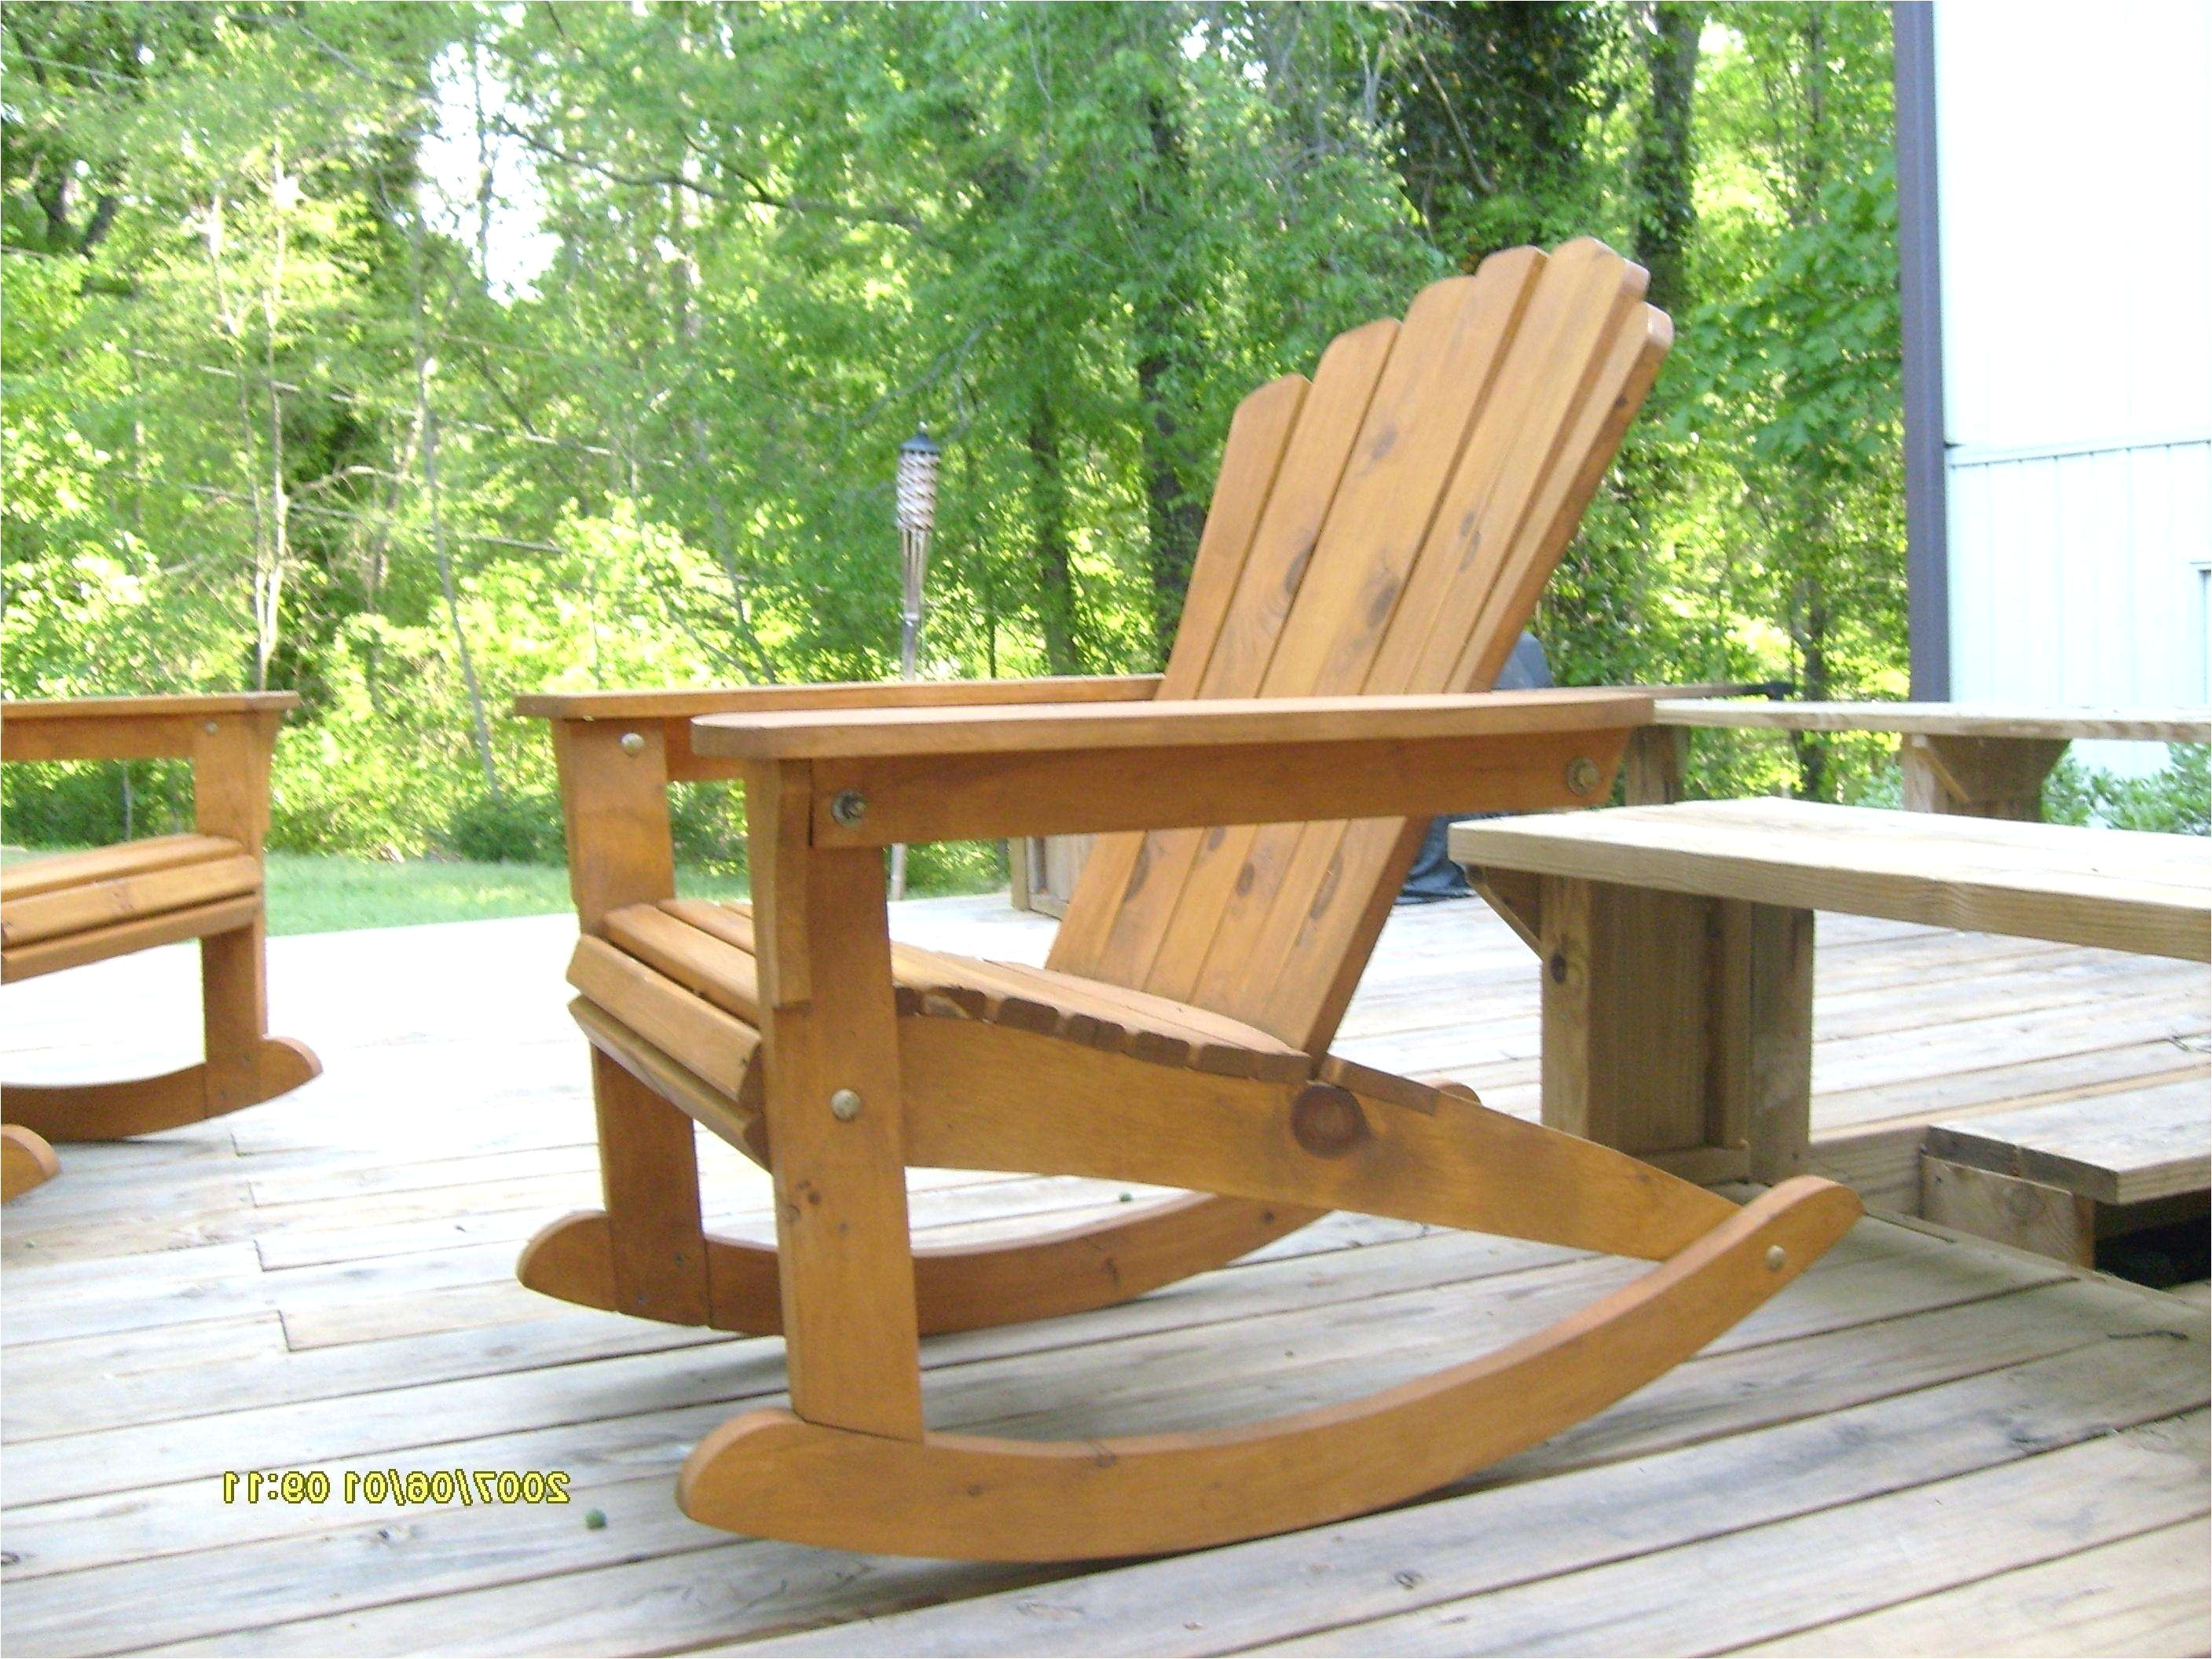 adirondac chair plans small kitchen table and chairs canada tall double adirondack articles with recycled plastic uk tag